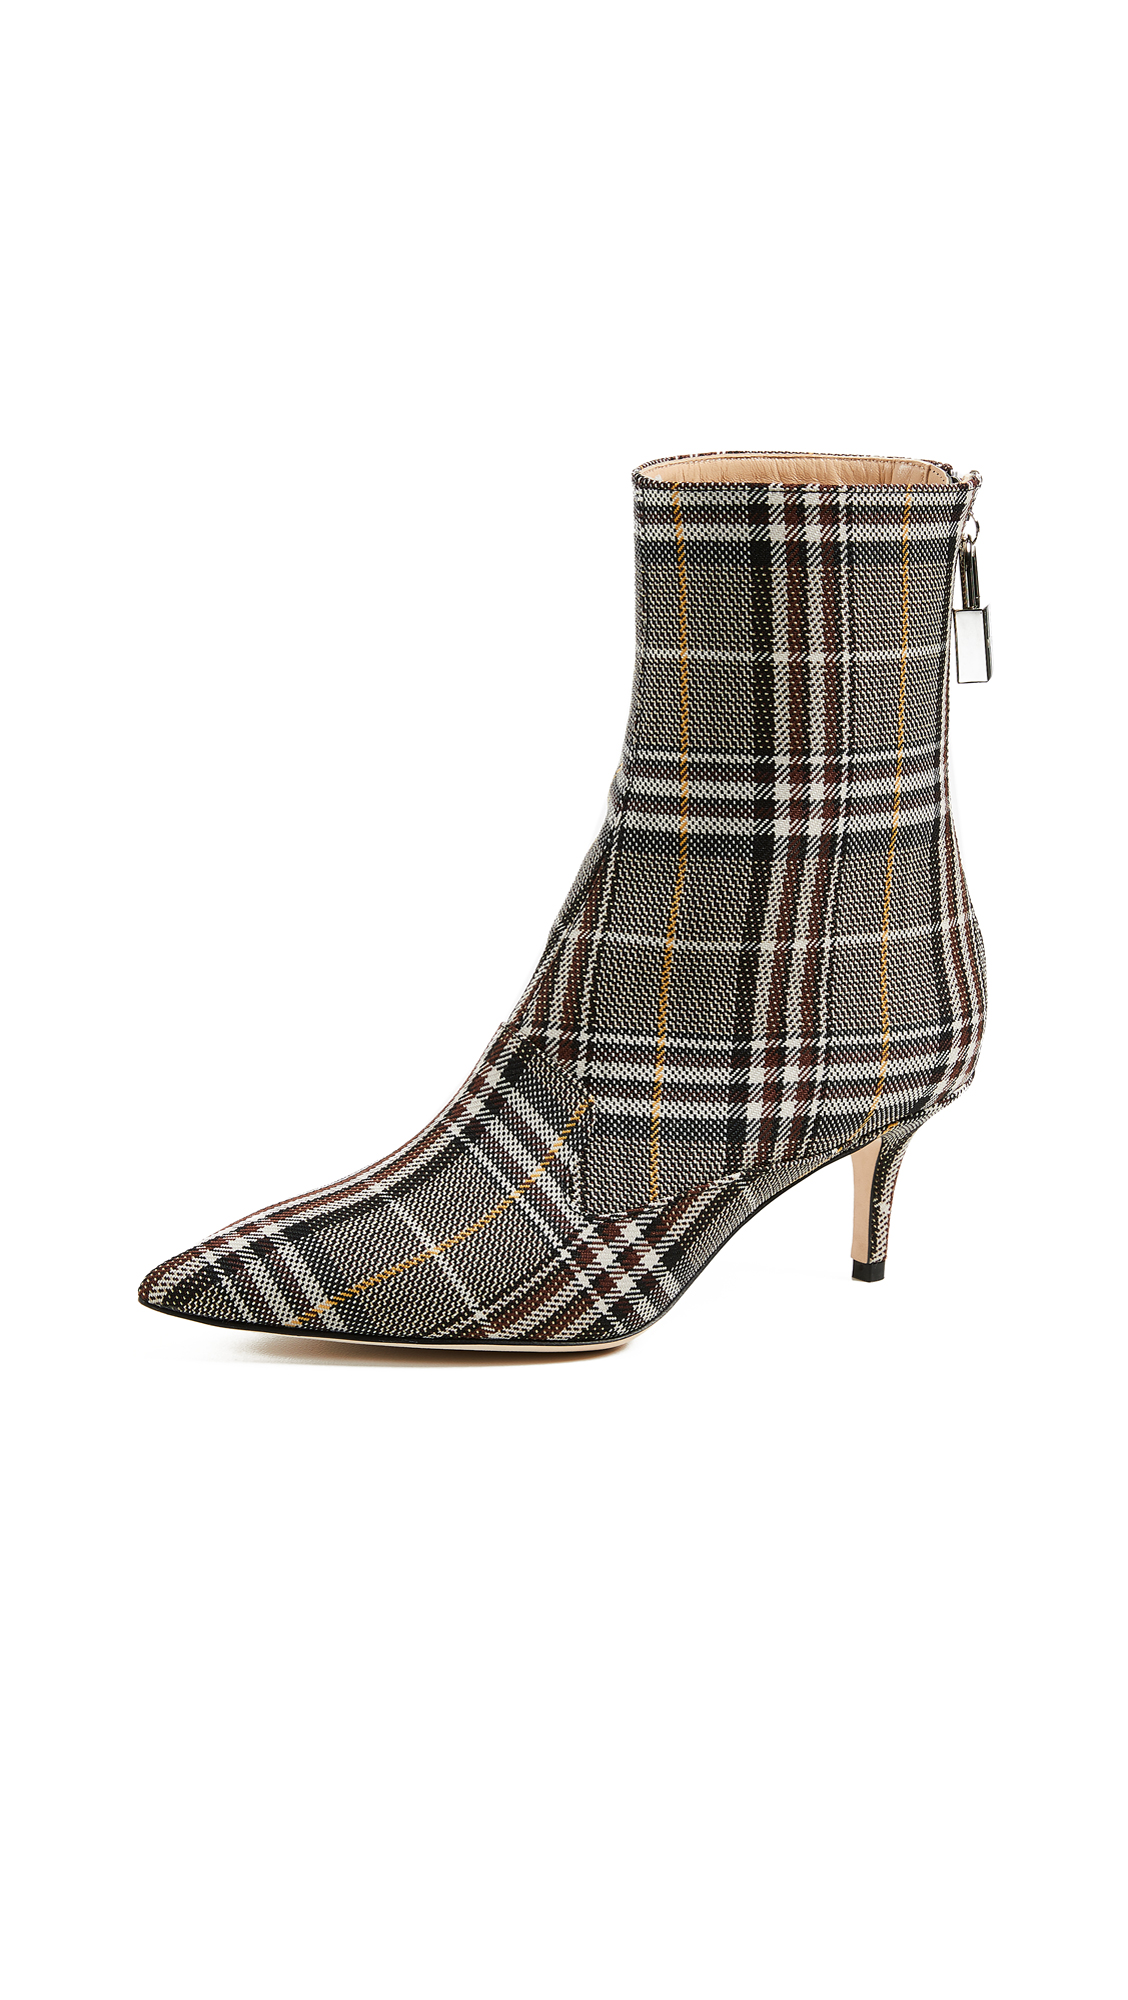 Monse Lock Booties - Plaid Charcoal